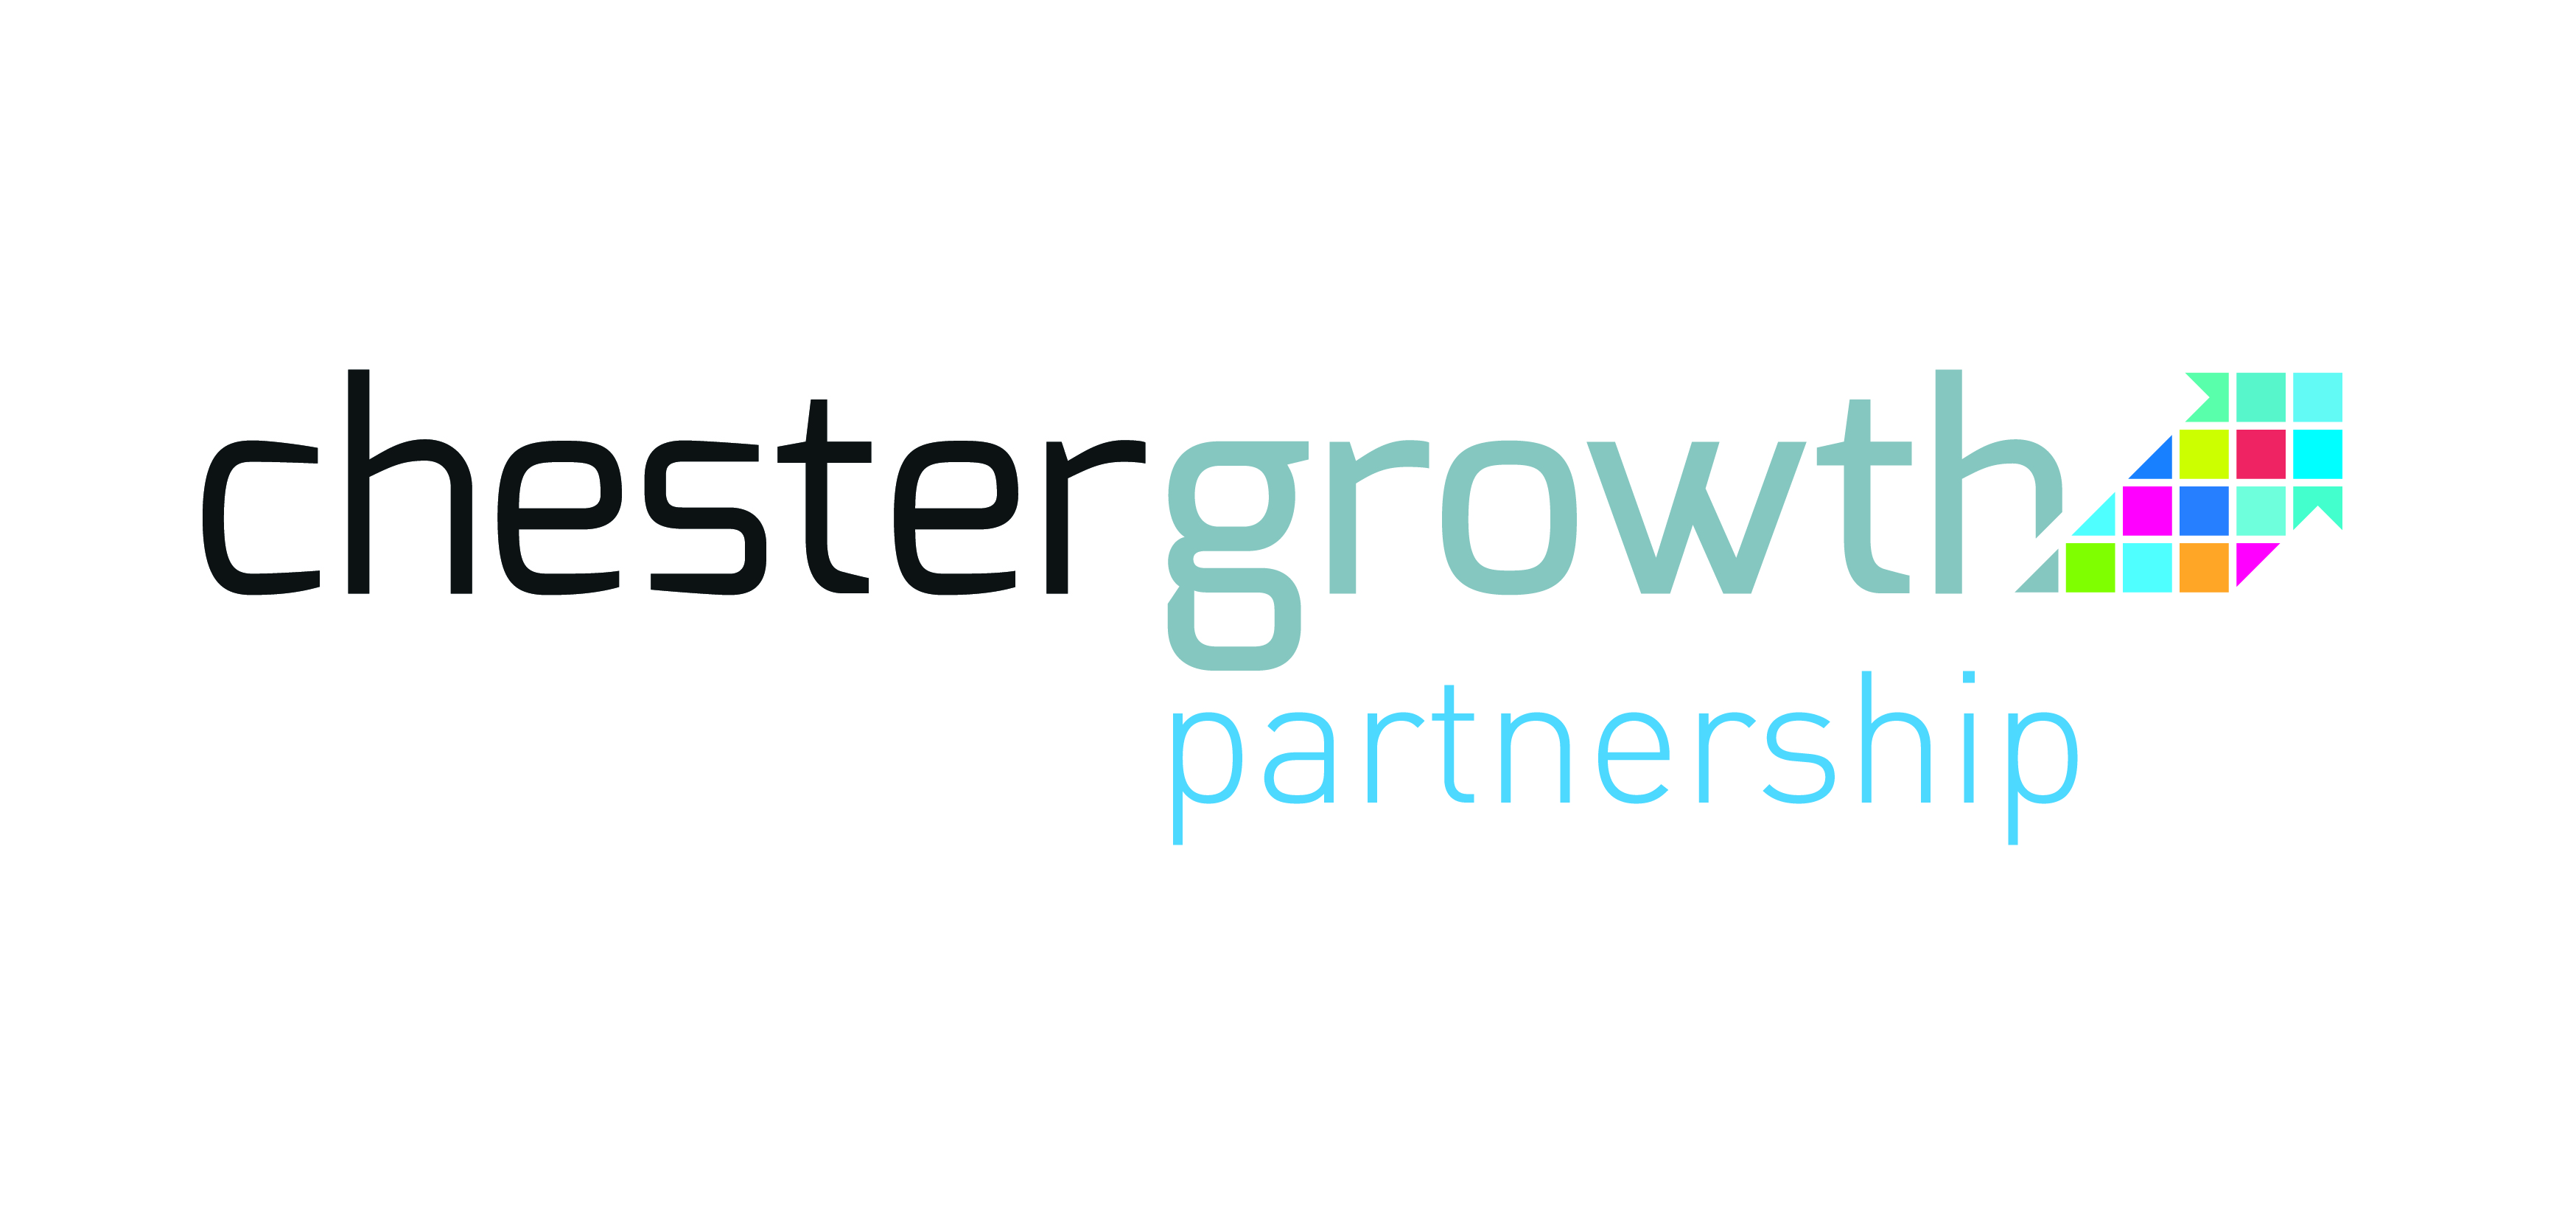 Chester Growth Partnership along with key partners will deliver a programme of improvements in Chester.